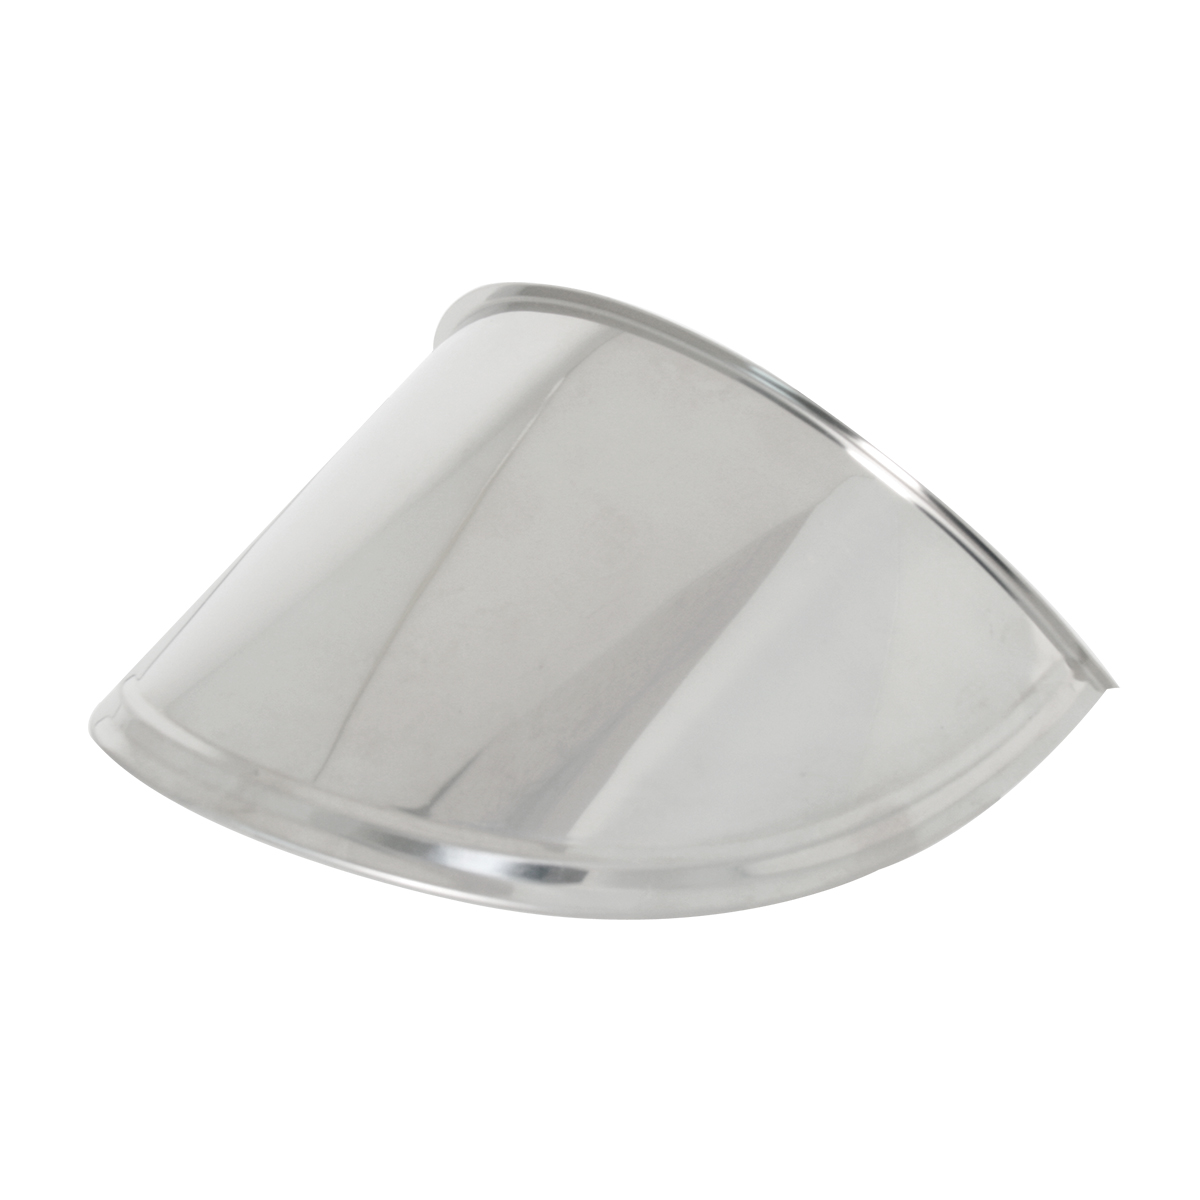 "7"" Stainless Steel Headlight Extended Visor"